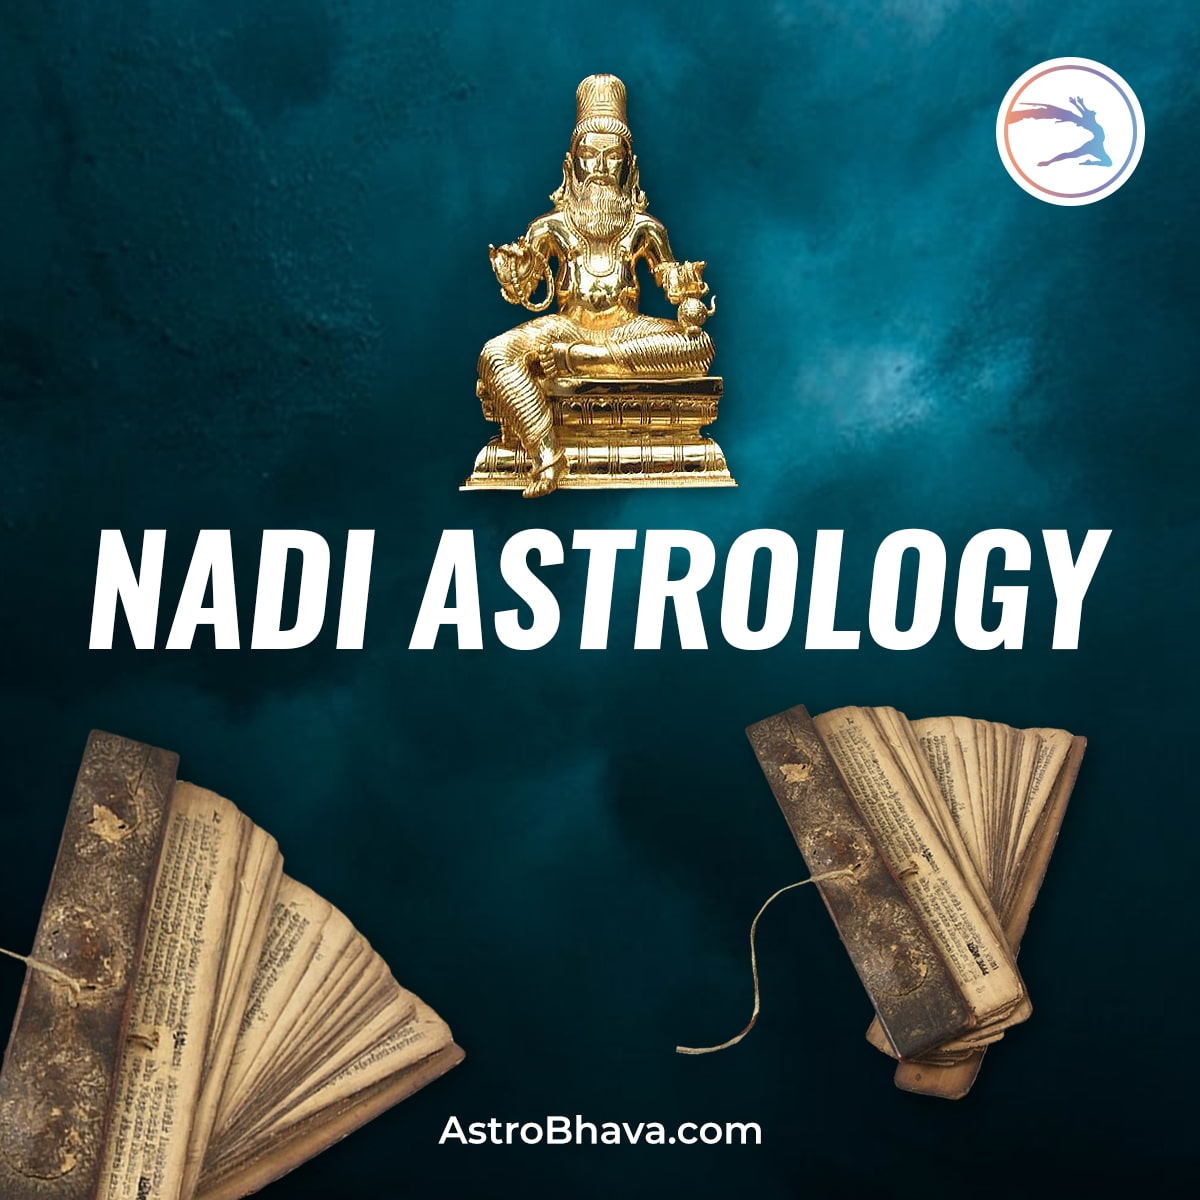 AstroBhava's Nadi Astrology - An Ancient Way To Know The Past, Present & Future